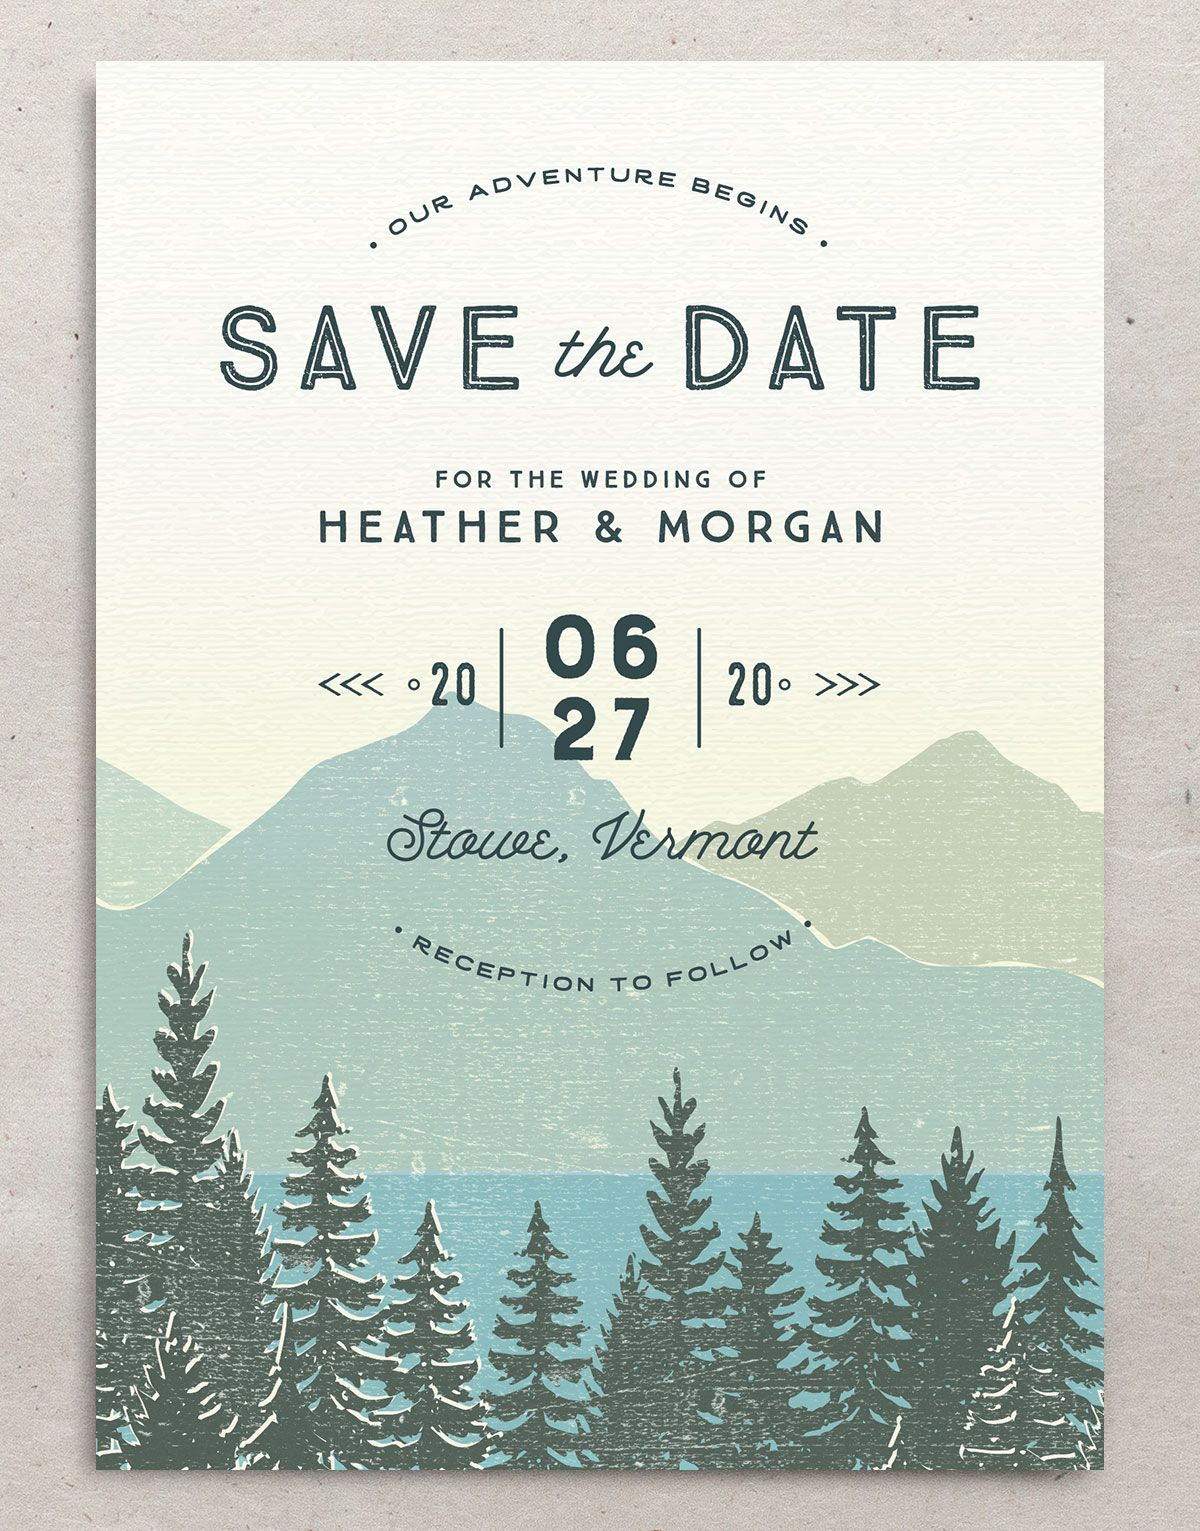 Vintage Mountainside save the date front